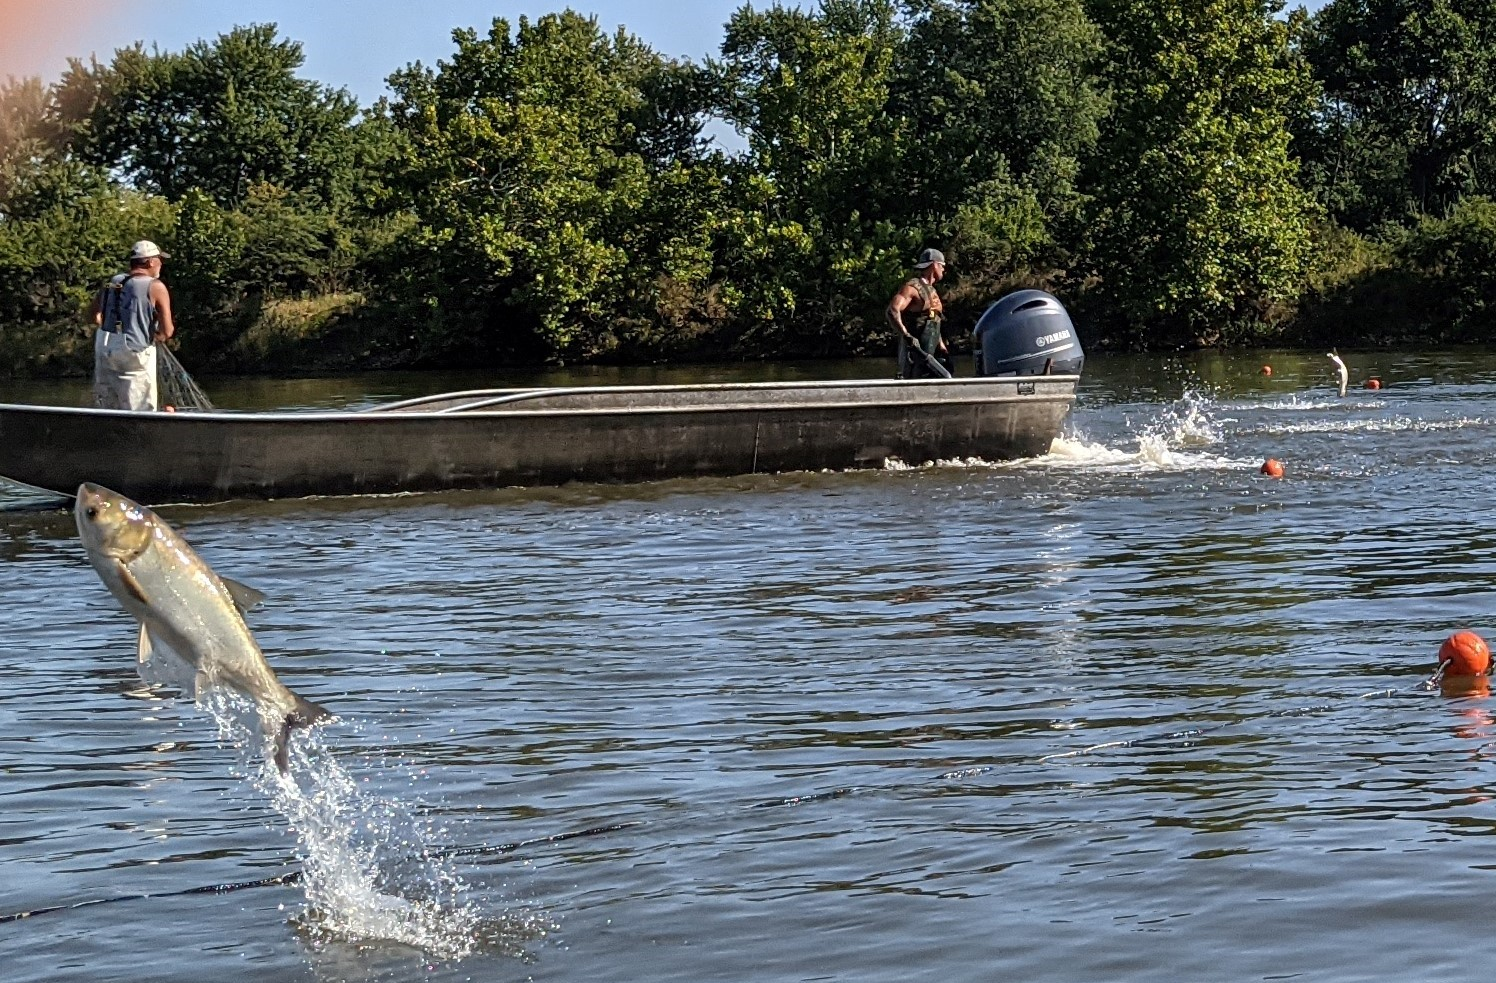 Guy Price and his son Shawn (driving) circle jumping silver carp into nets at on the Illinois River. Credit: Dale Bowman